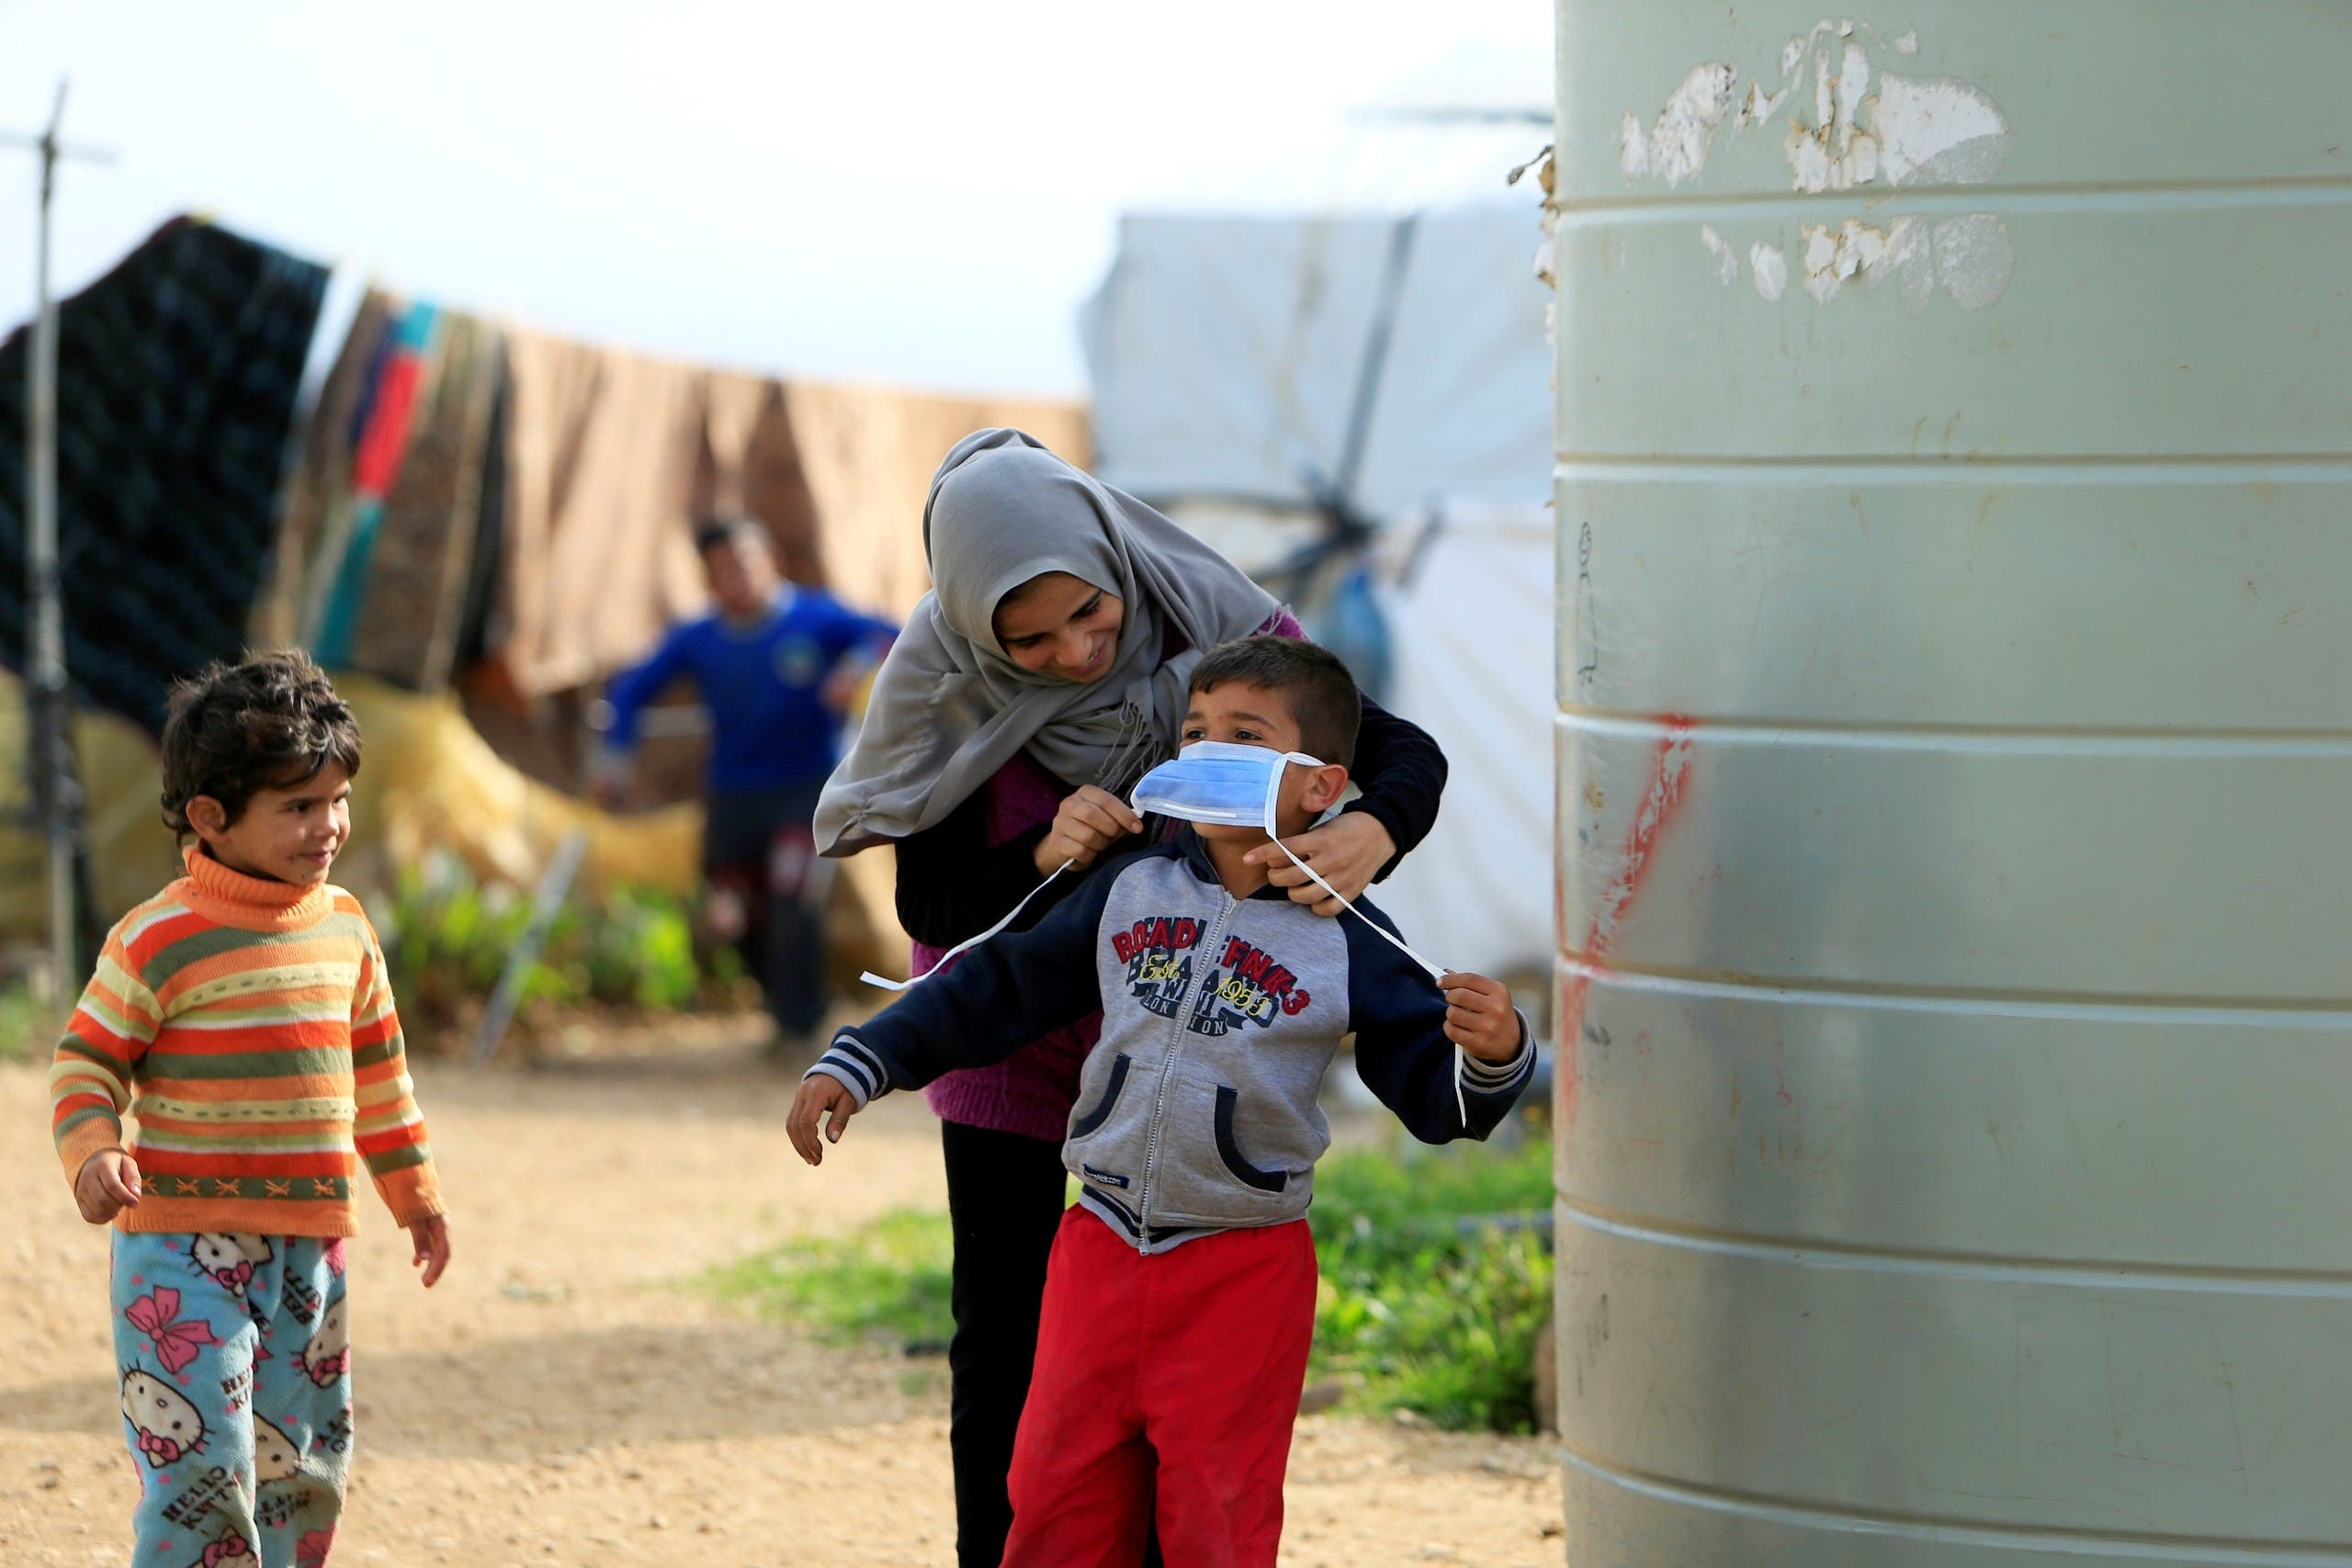 A Syrian refugee woman puts a face mask on a boy as a precaution against the spread of coronavirus, in al-Wazzani area, in southern Lebanon, March 14, 2020. (Reuters)